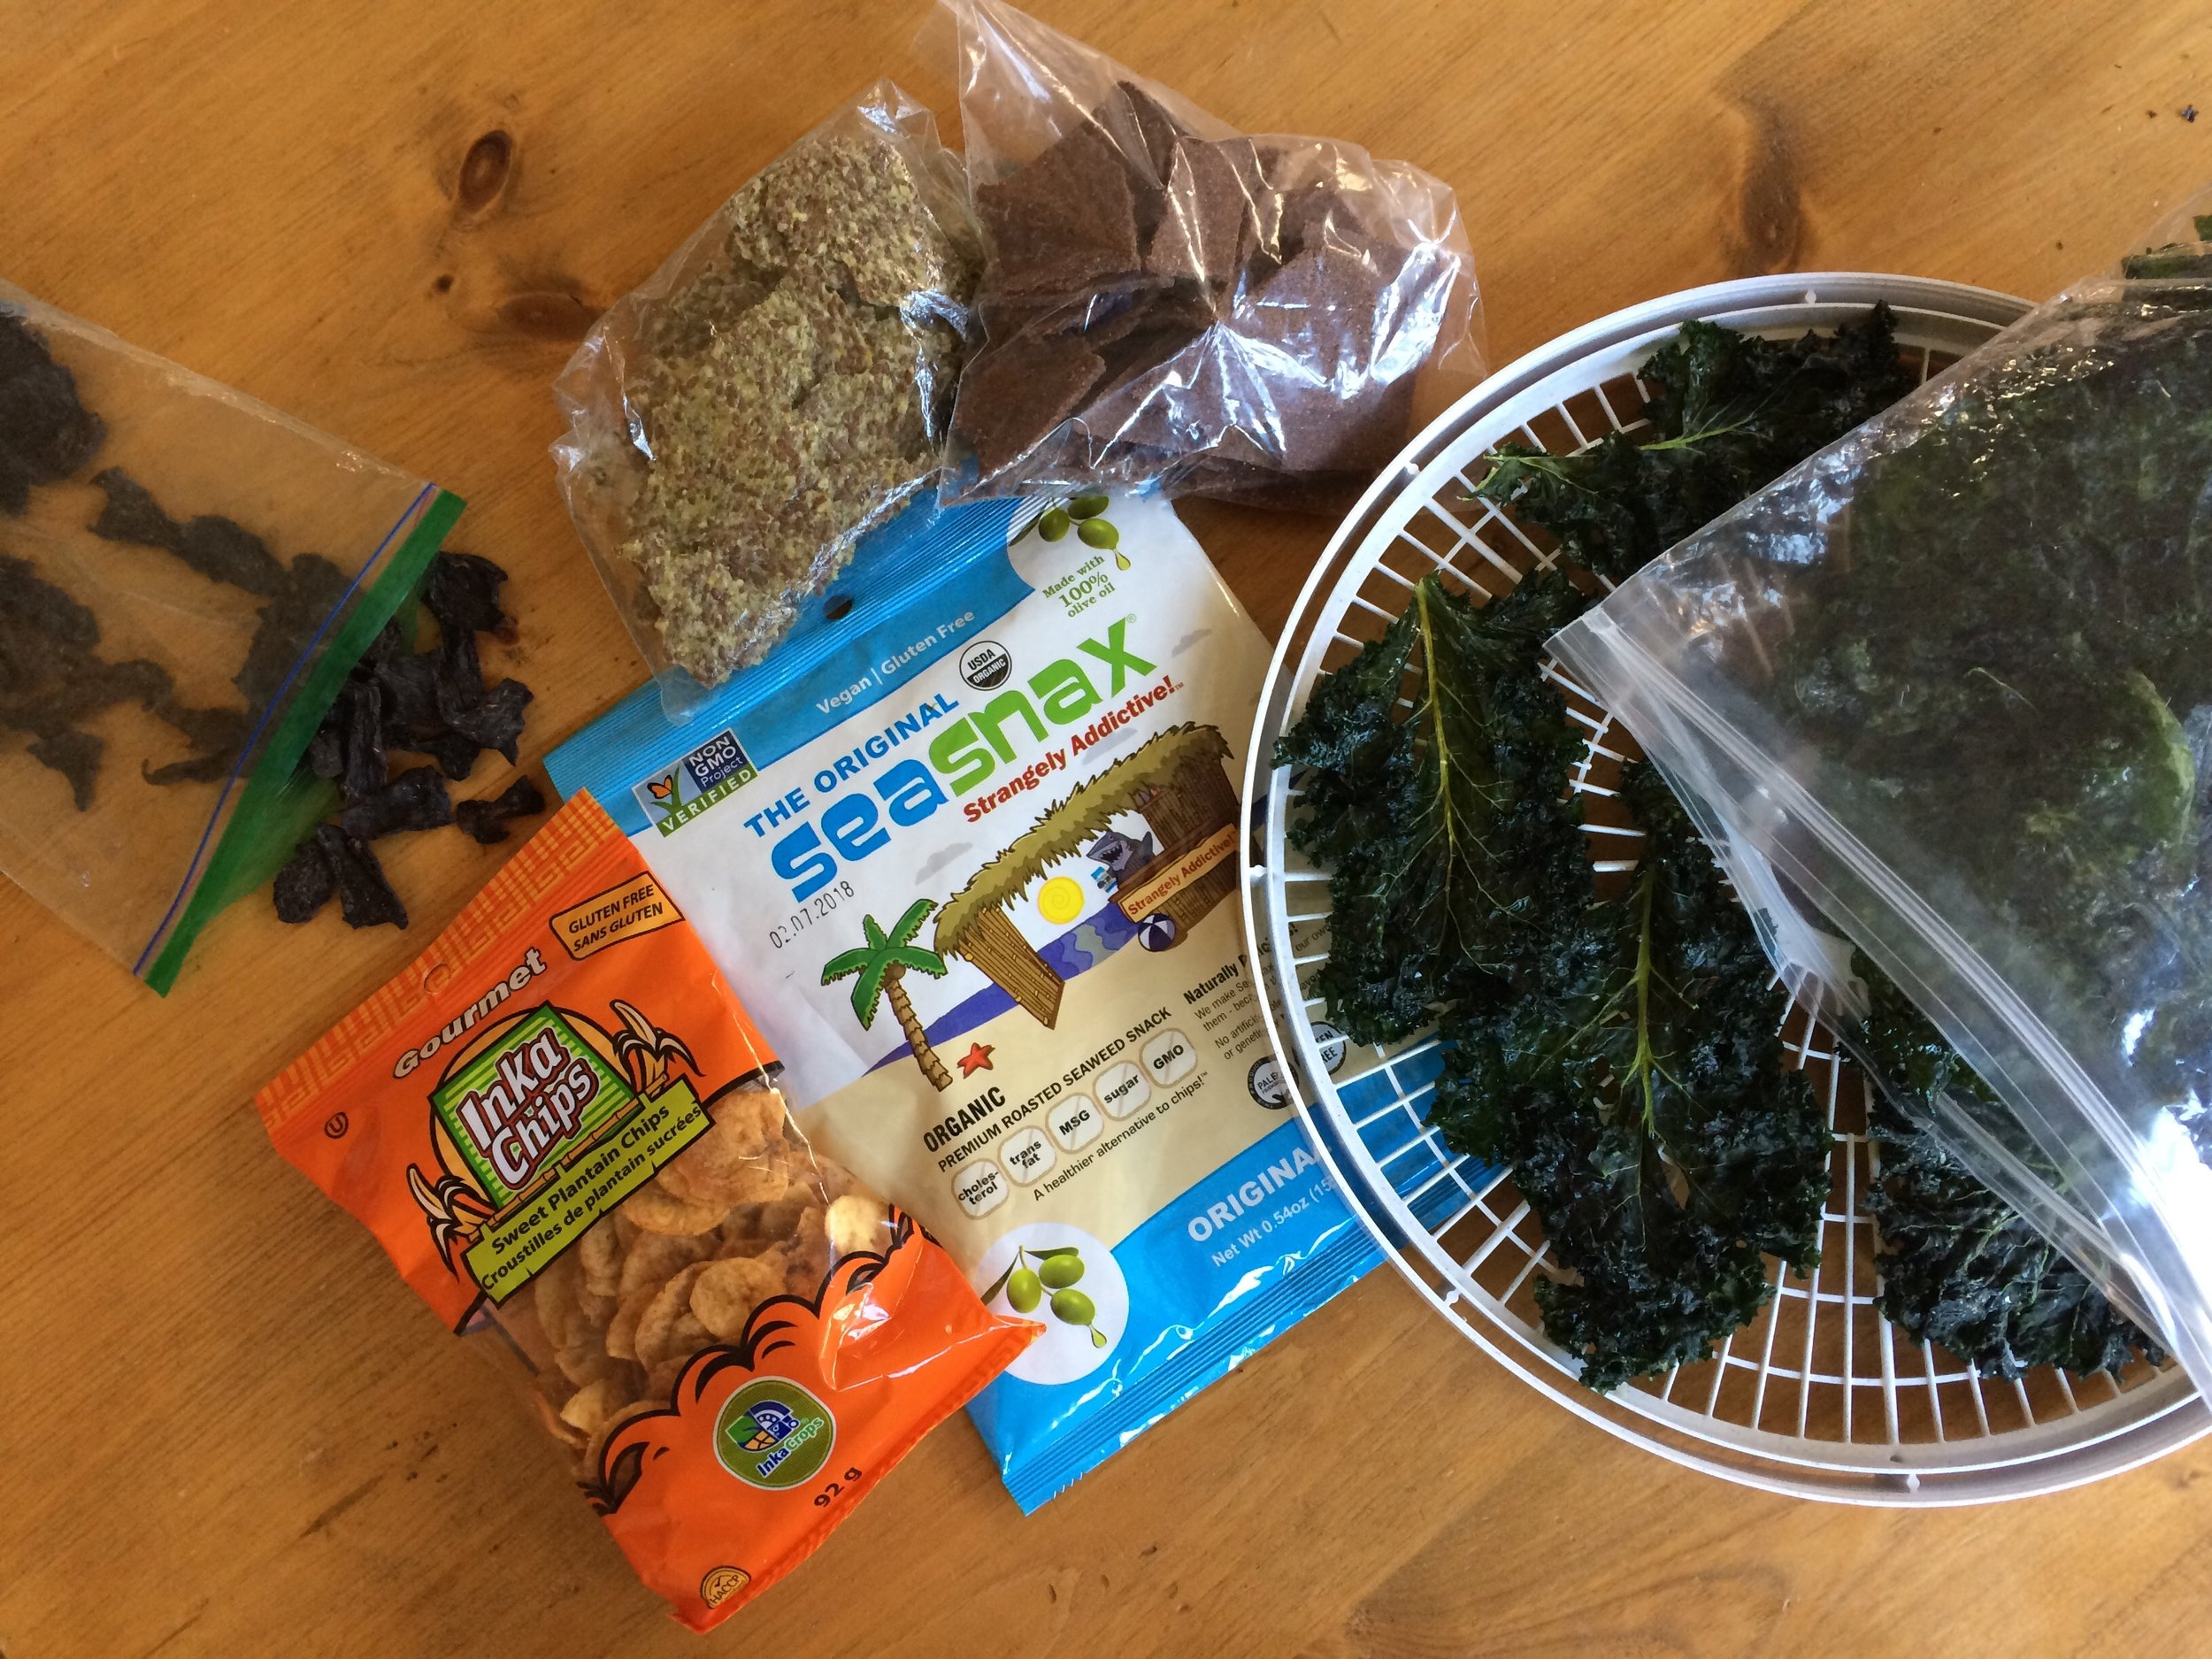 Here are my dehydrator snacks, plus a couple of items from the store.